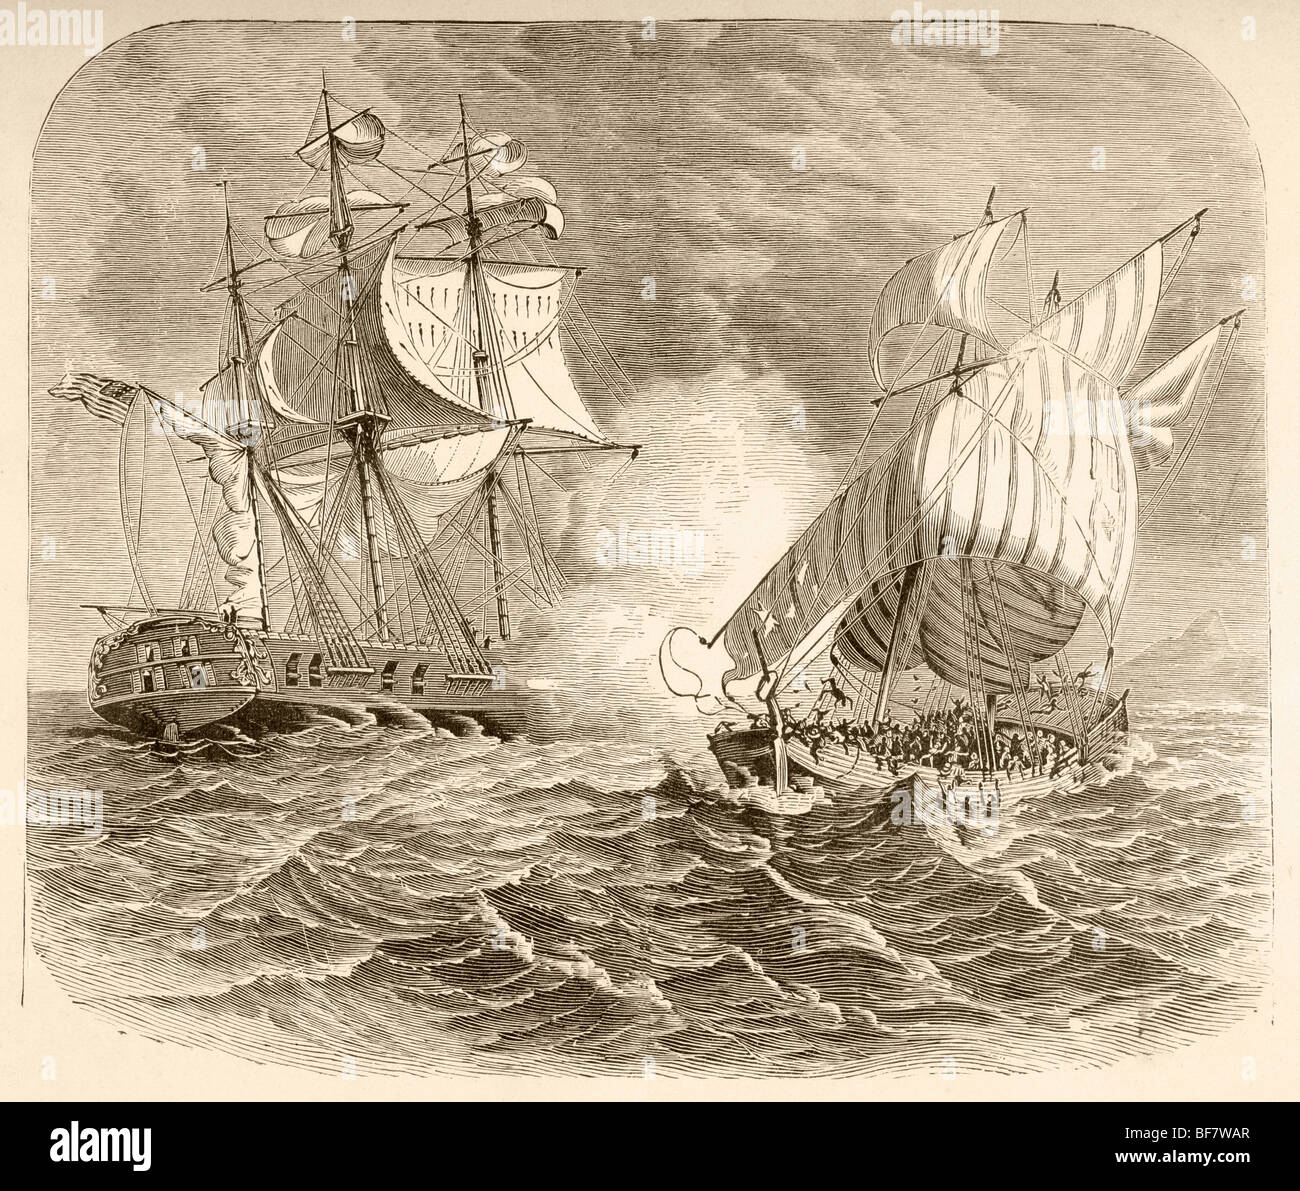 An American Navy ship captures an Algerian pirate ship off the Barbary Coast during the First Barbary War 1801 to - Stock Image